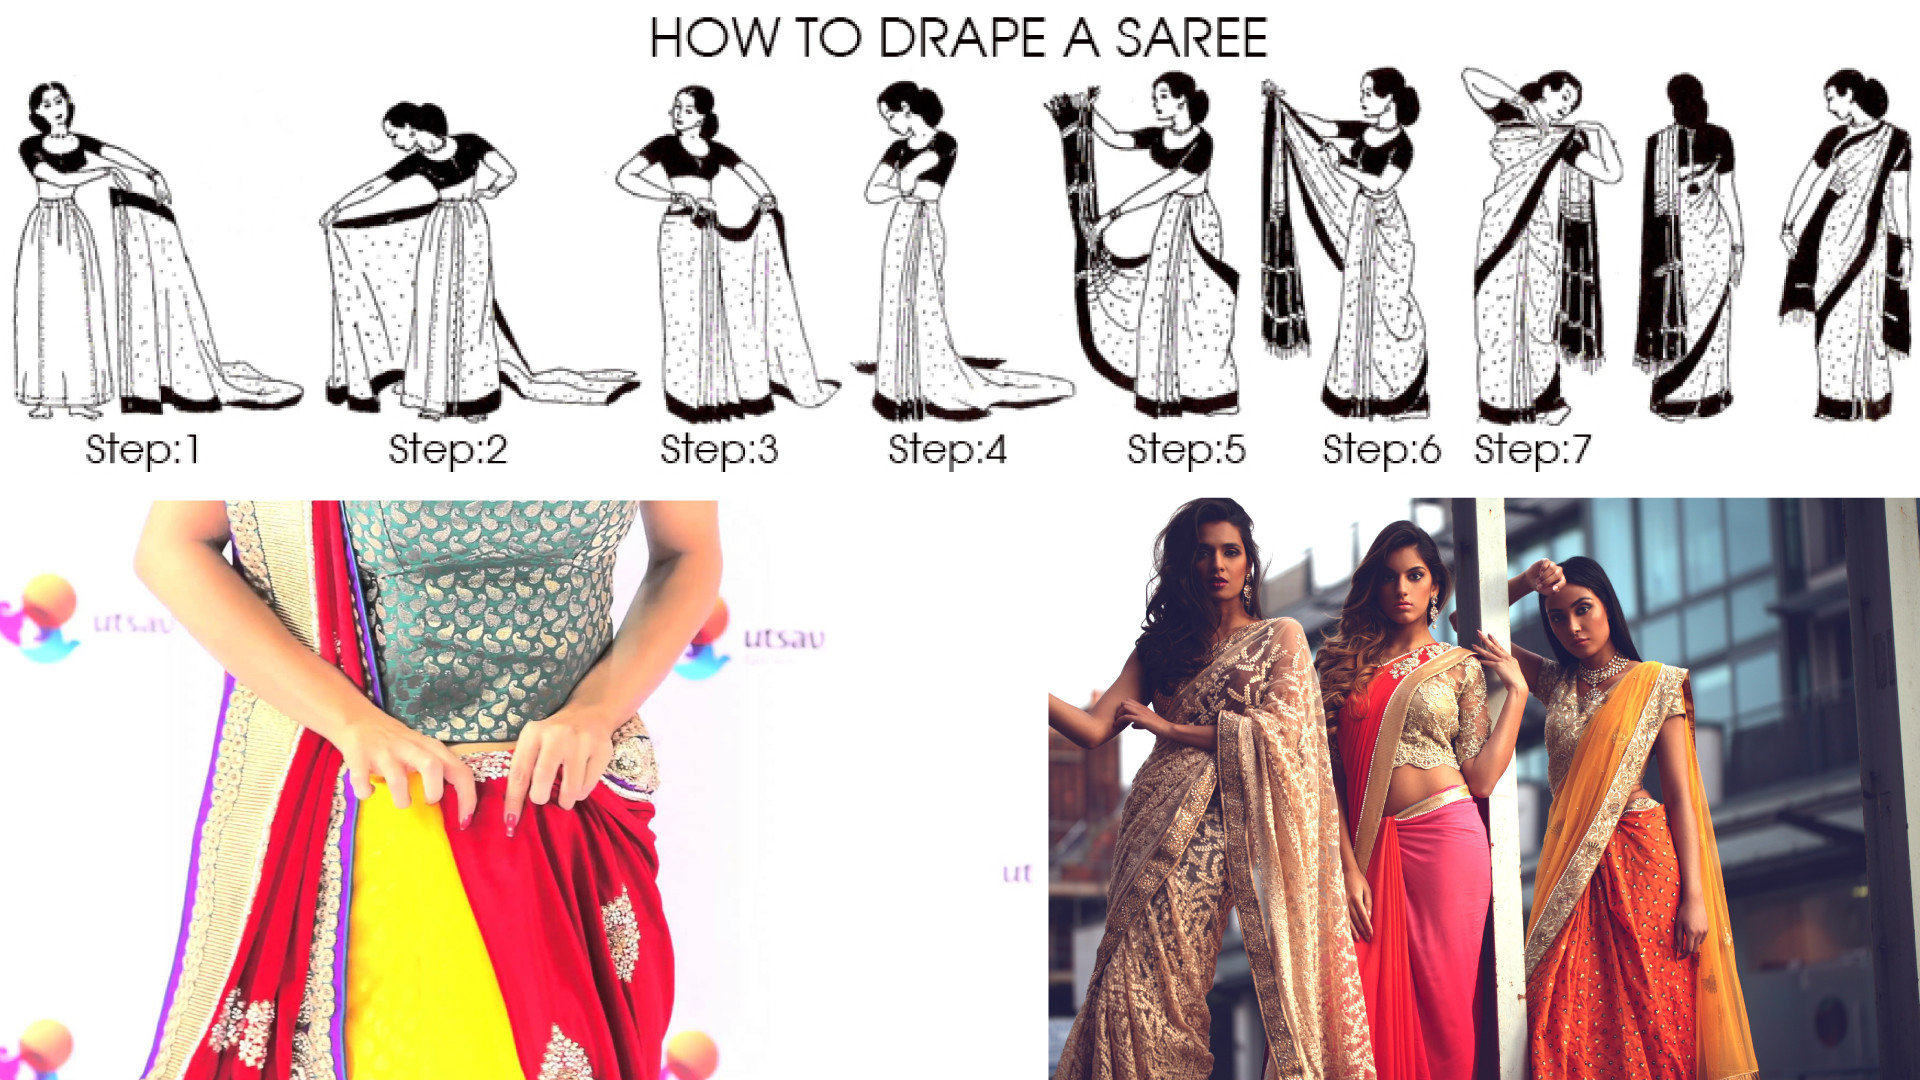 6 Things To Keep In Mind While Draping